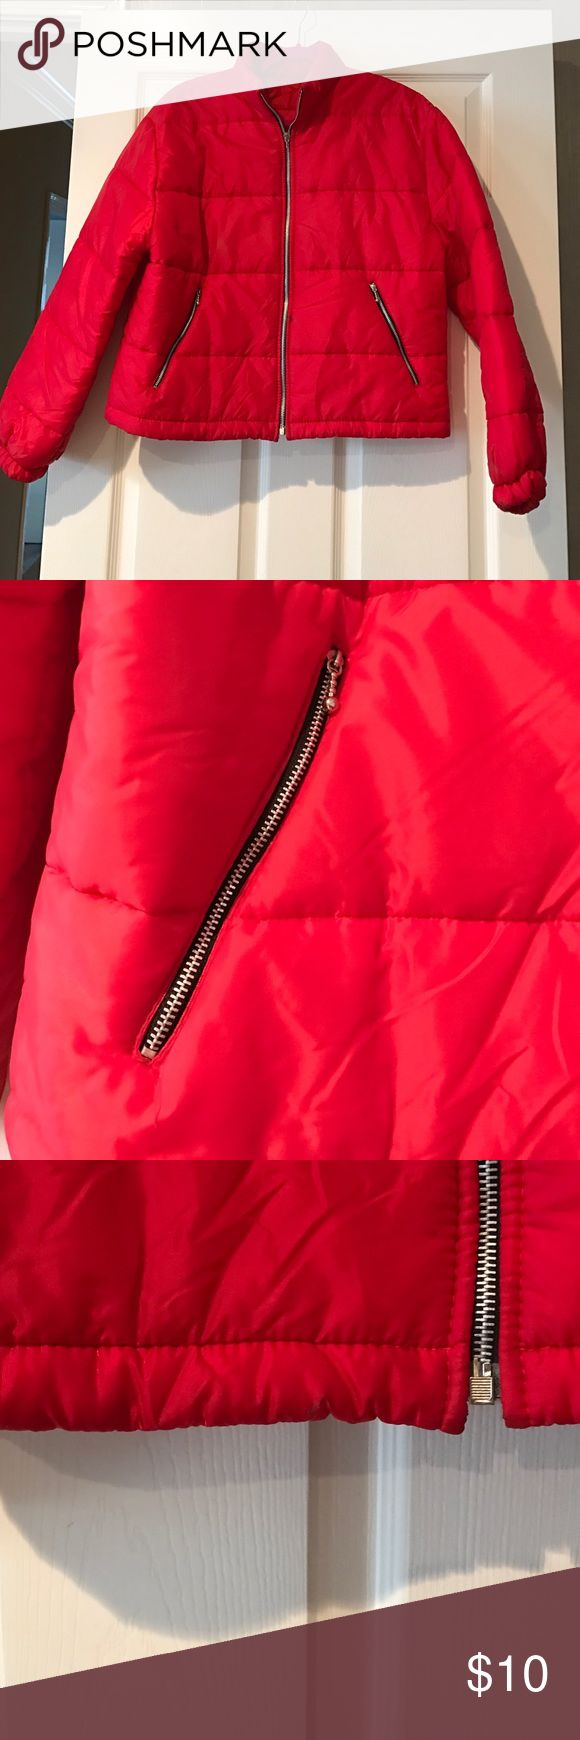 Red Bubble Jacket Perfect Red Zip Up Bubble Jacket with side zip pockets. Small stain on sleeve but faces inward so not very noticeable. Good condition. Unknown Jackets & Coats Puffers